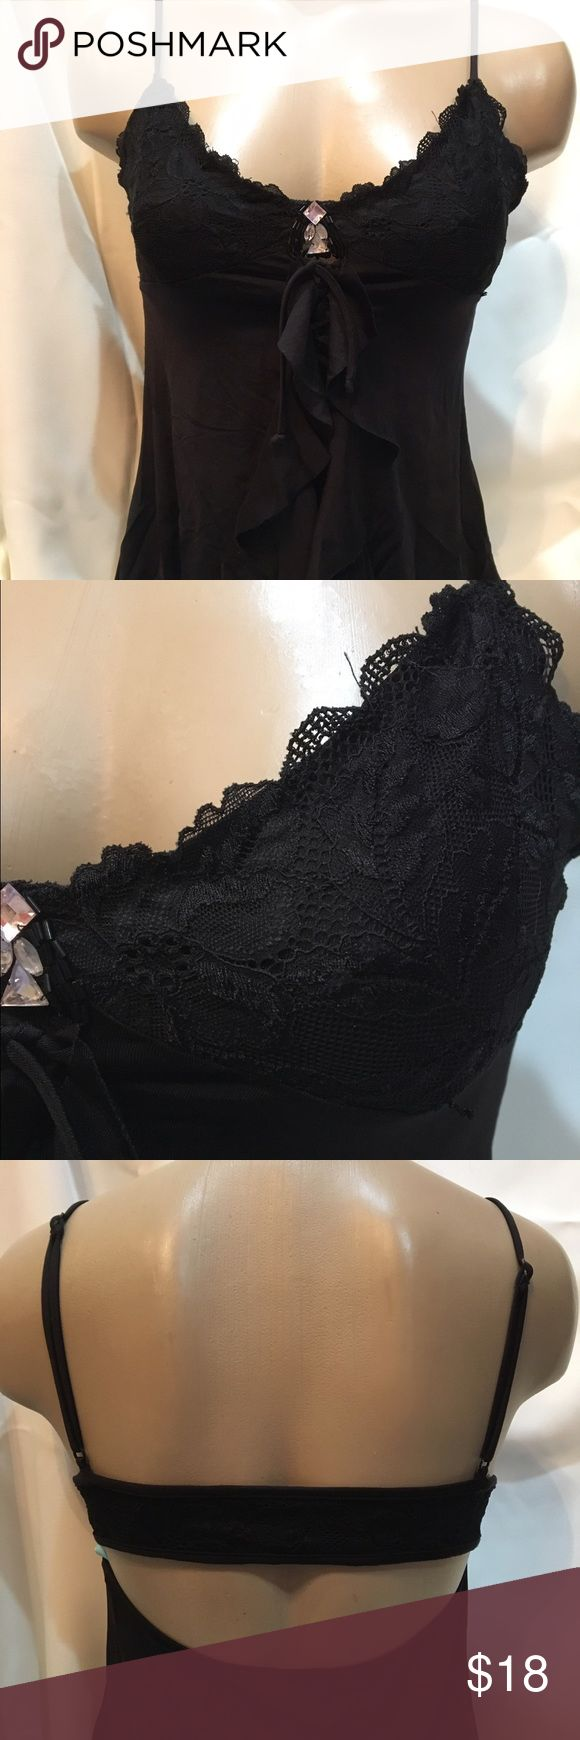 "Guess Marciano Black Top M 92% nylon 8% spandex 						Adjustable shoulder straps 					Rear center elastic lace covered back band Gathered front center ruffle 				Rhinestone & Sequin sewn on bodice accents 	  34"" chest unstretched 							  24"" length Guess by Marciano Tops Camisoles"